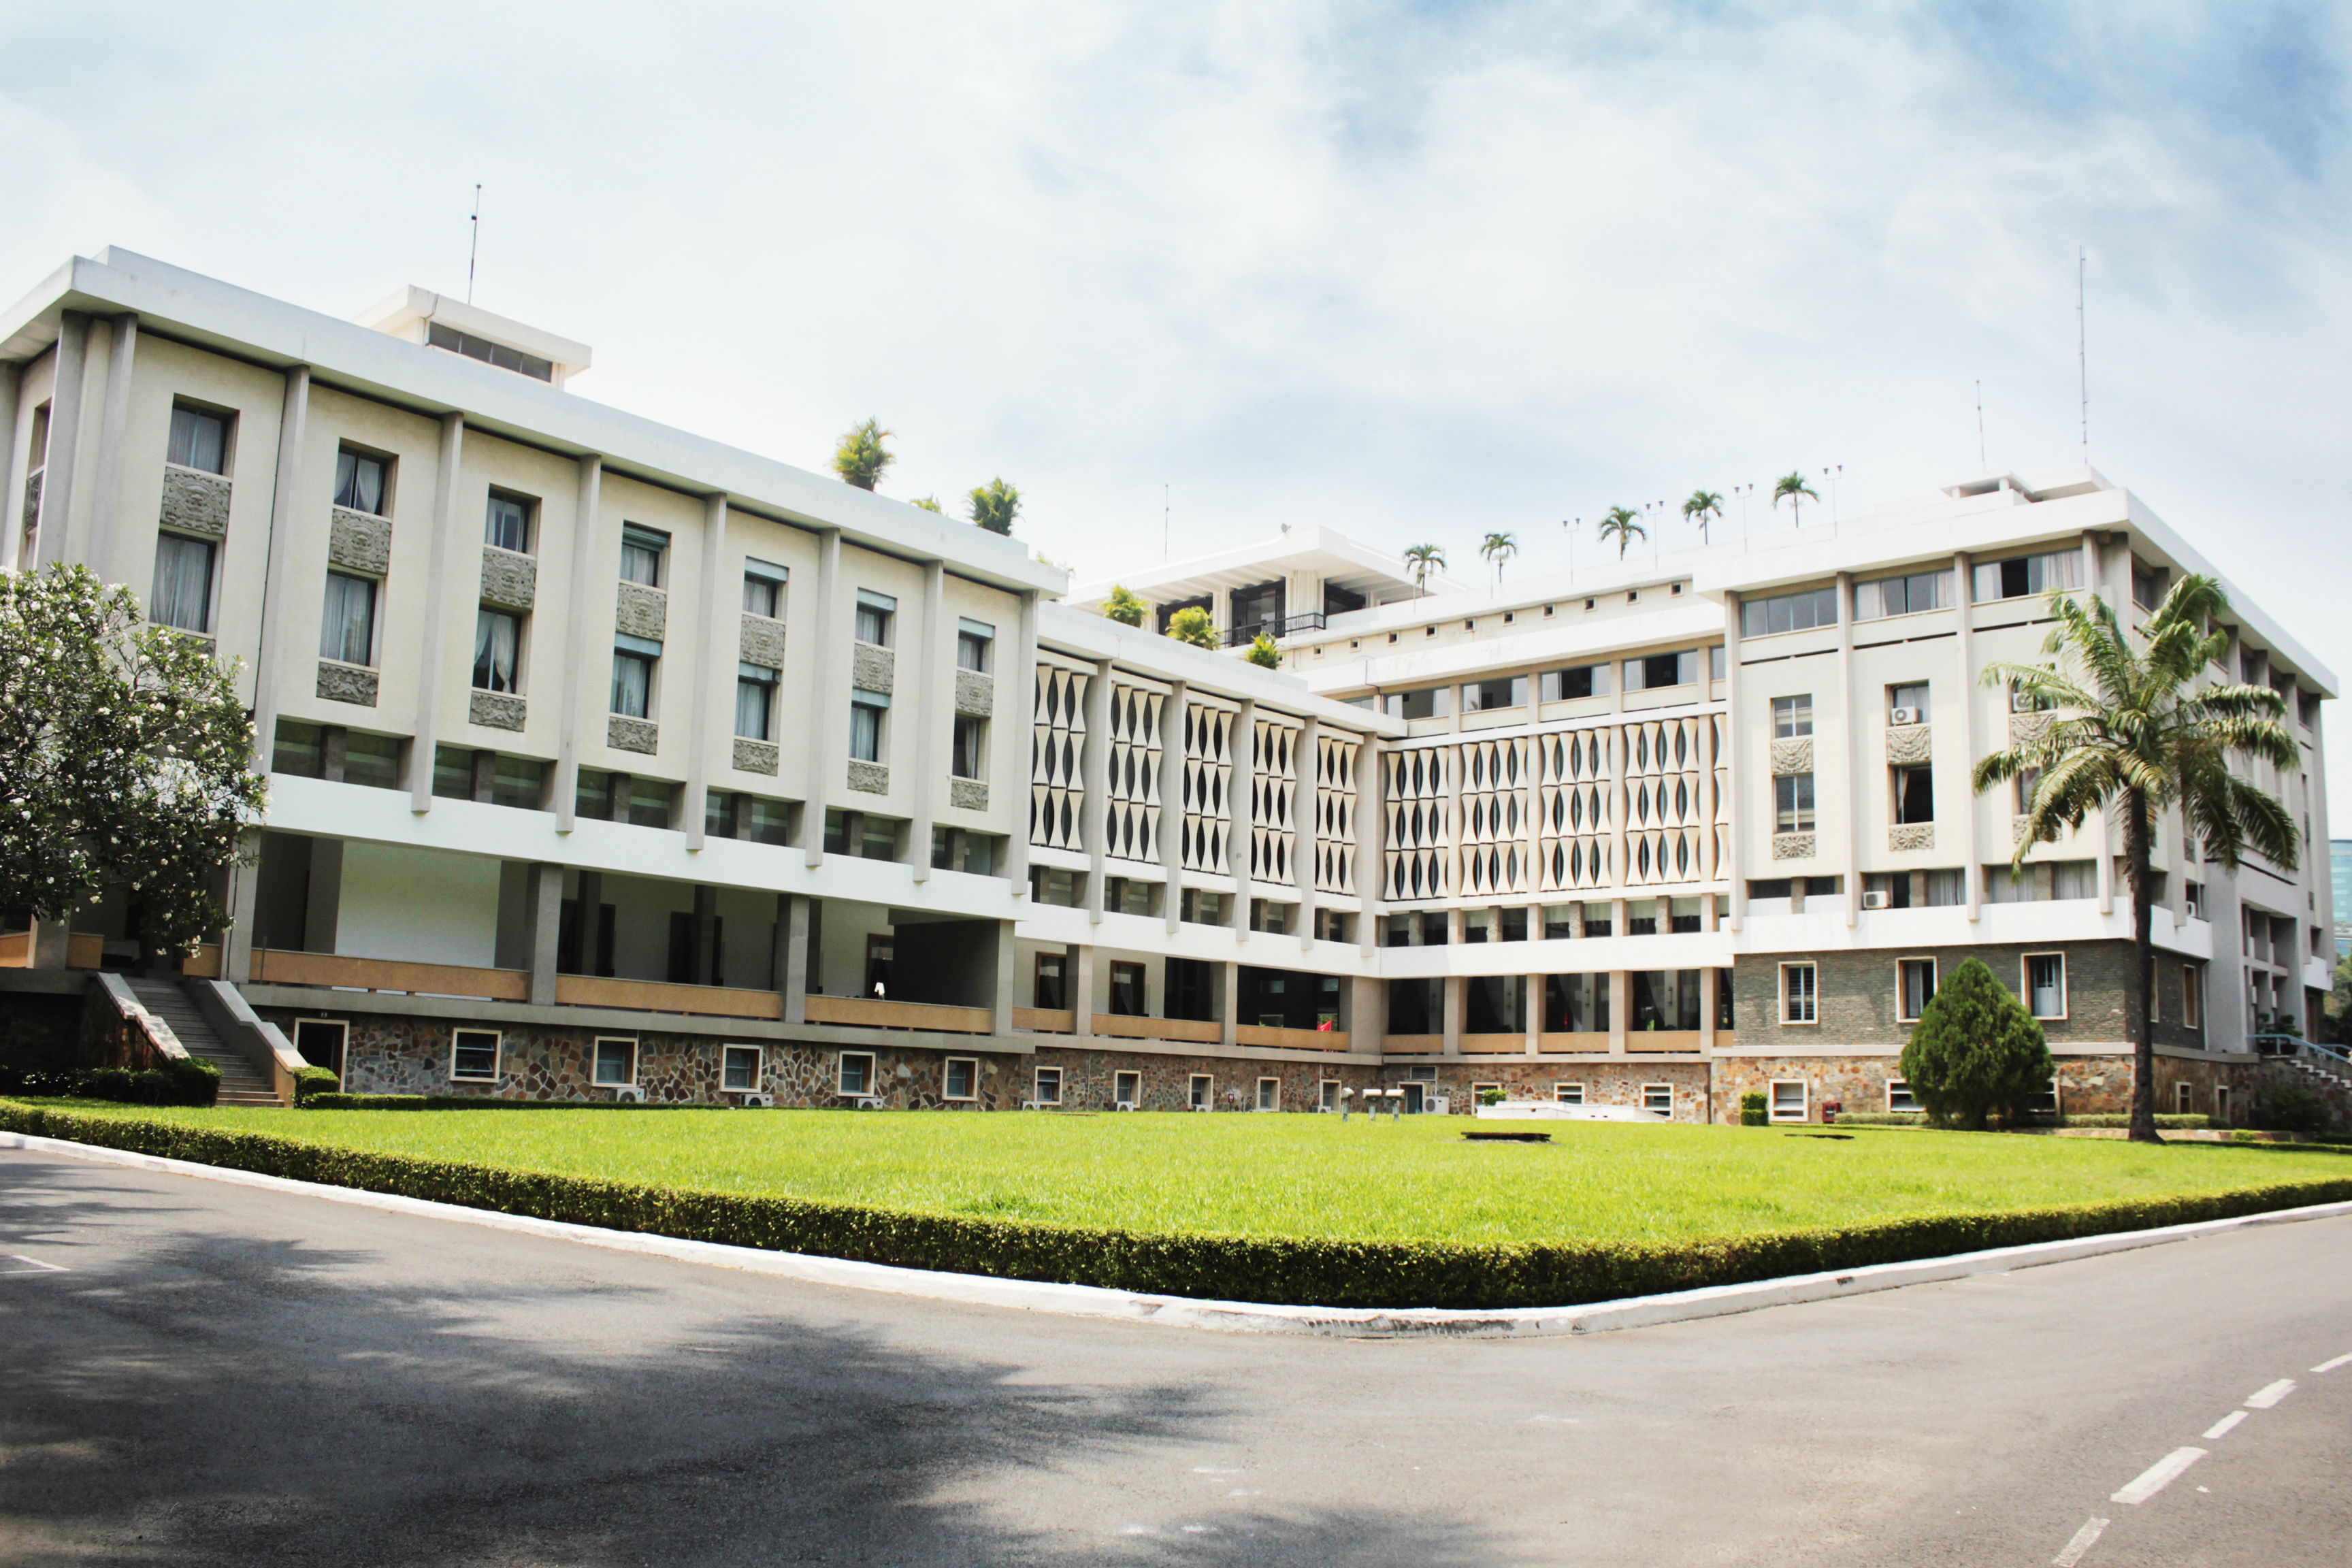 Rear courtyard of HCMC's Independence Palace, Vietnam.